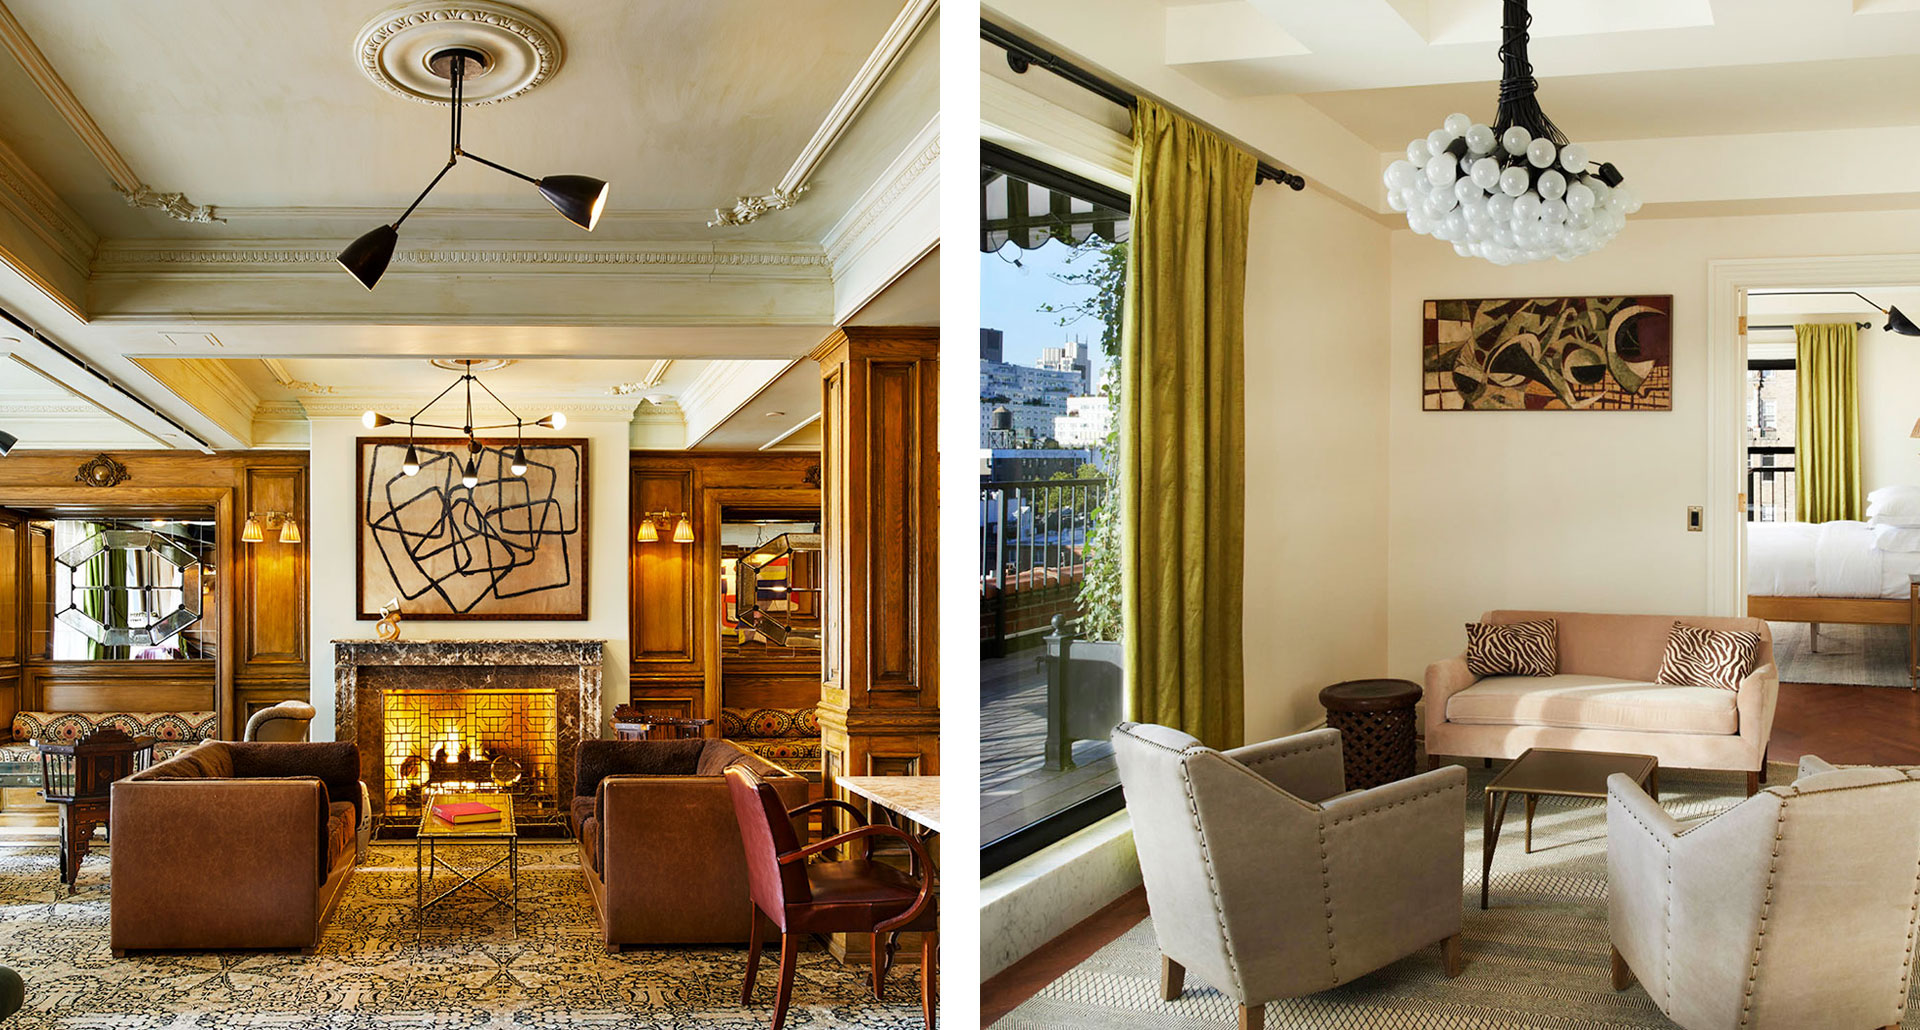 The Marlton Hotel - boutique hotel in New York